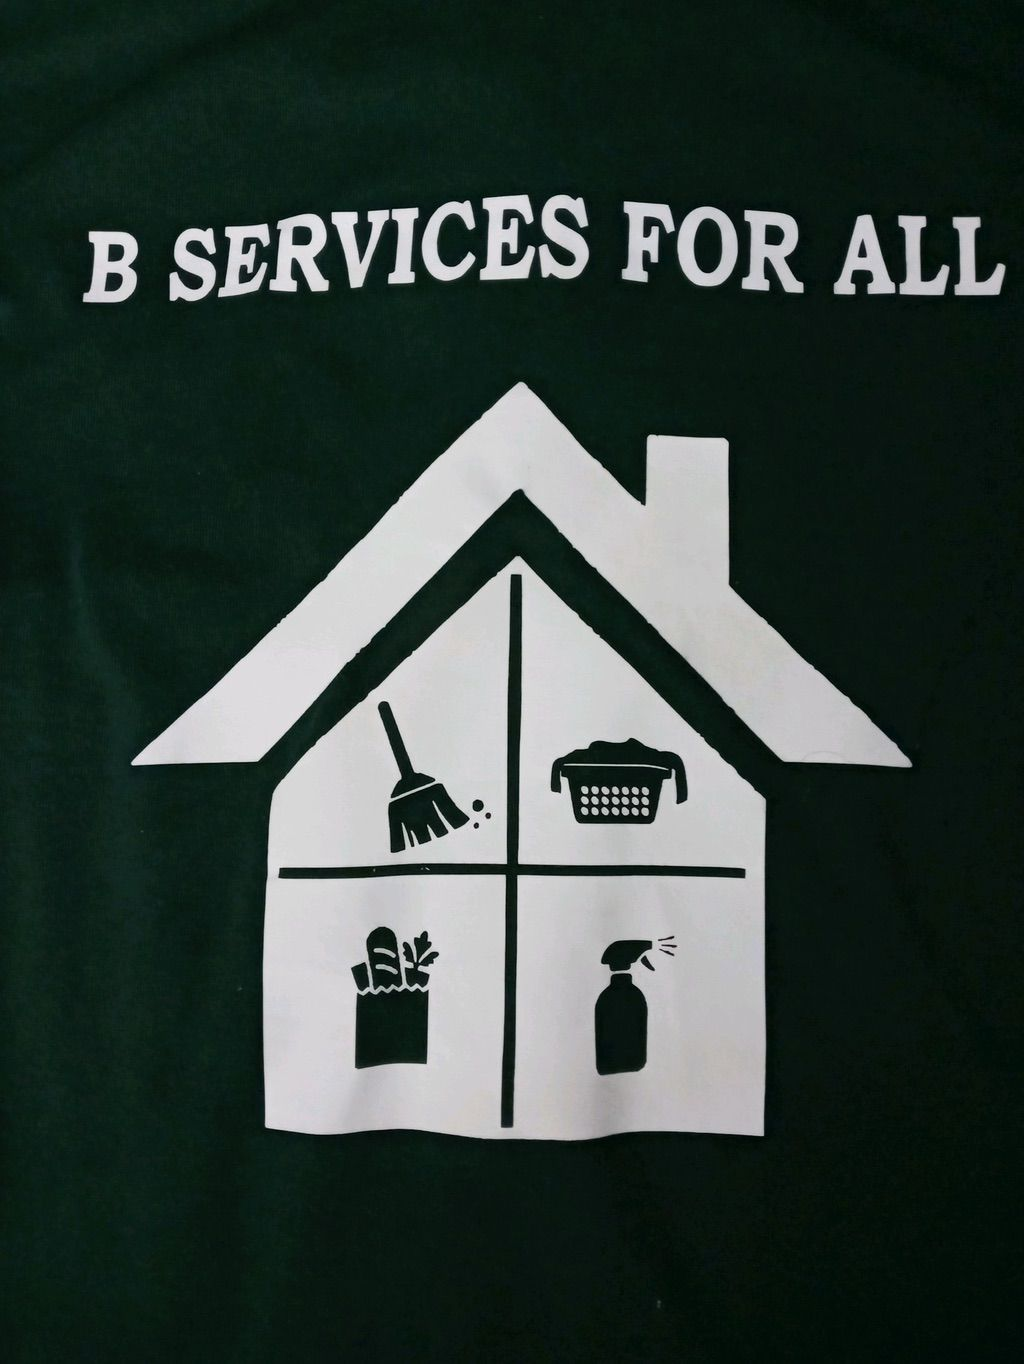 B SERVICES FOR ALL LLC